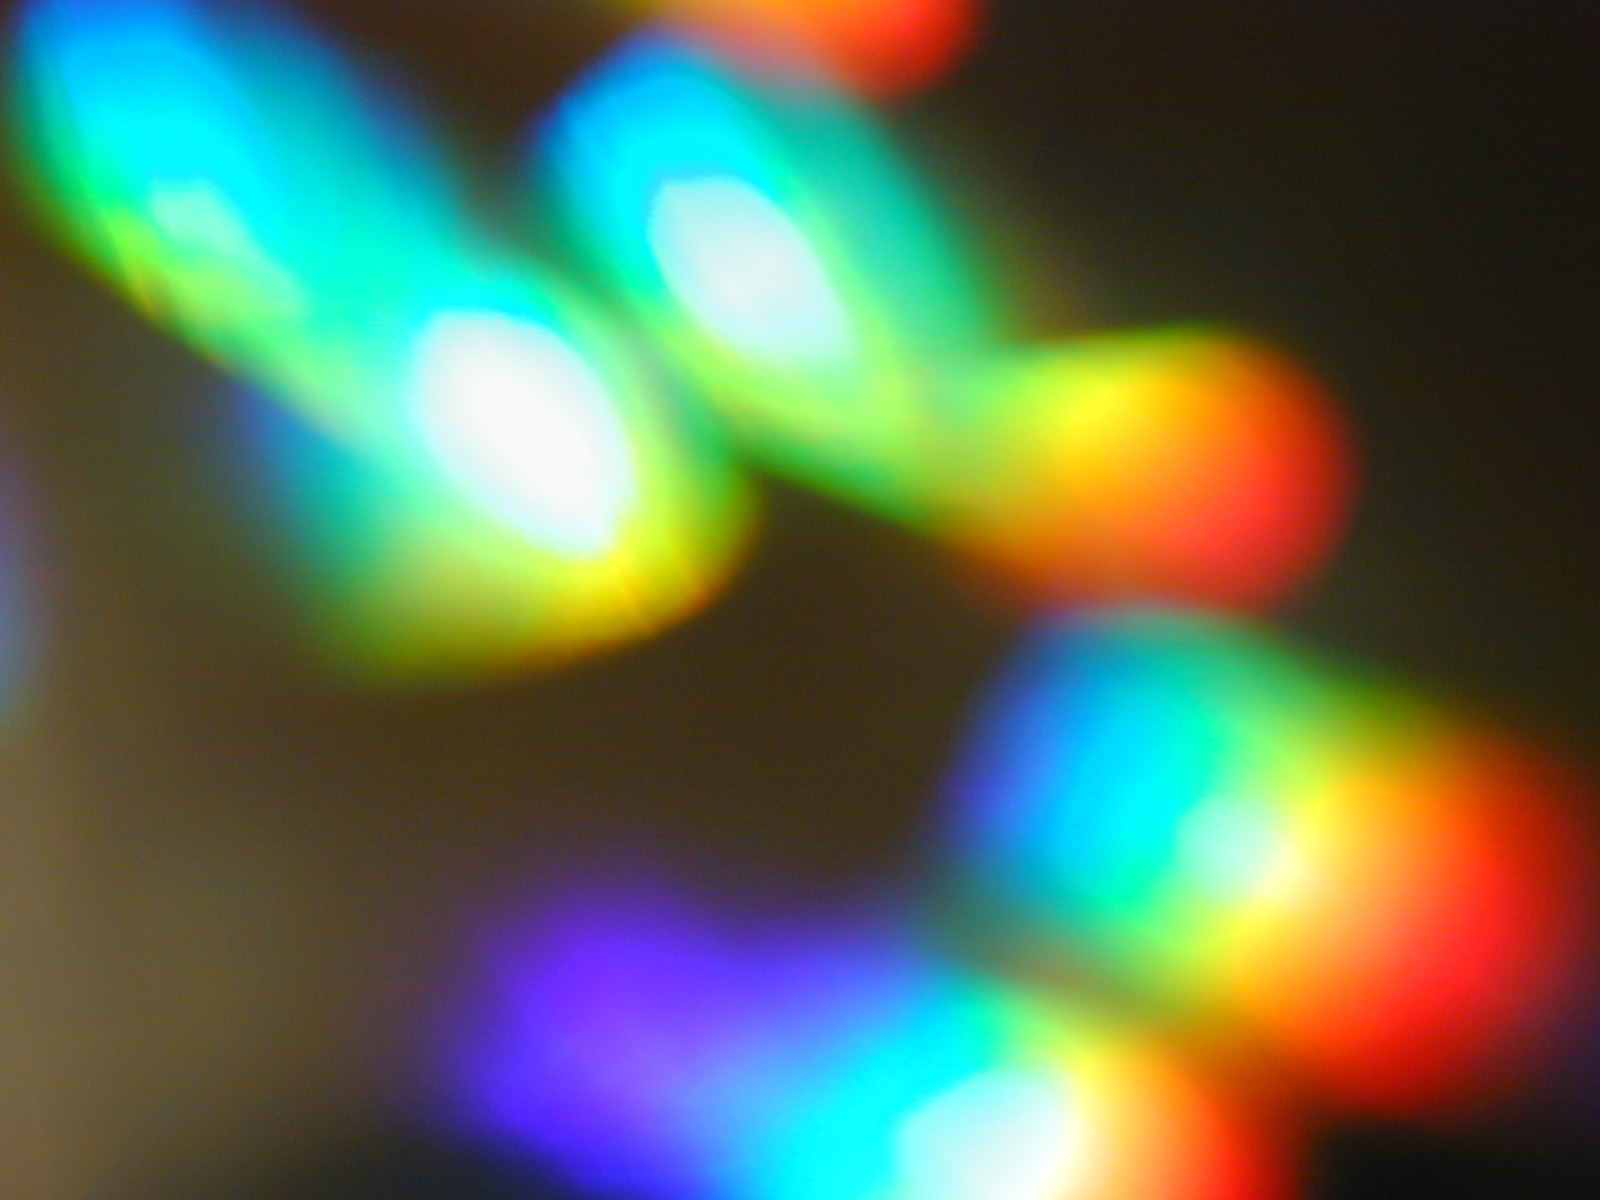 abstract image of rainbow coloured lights